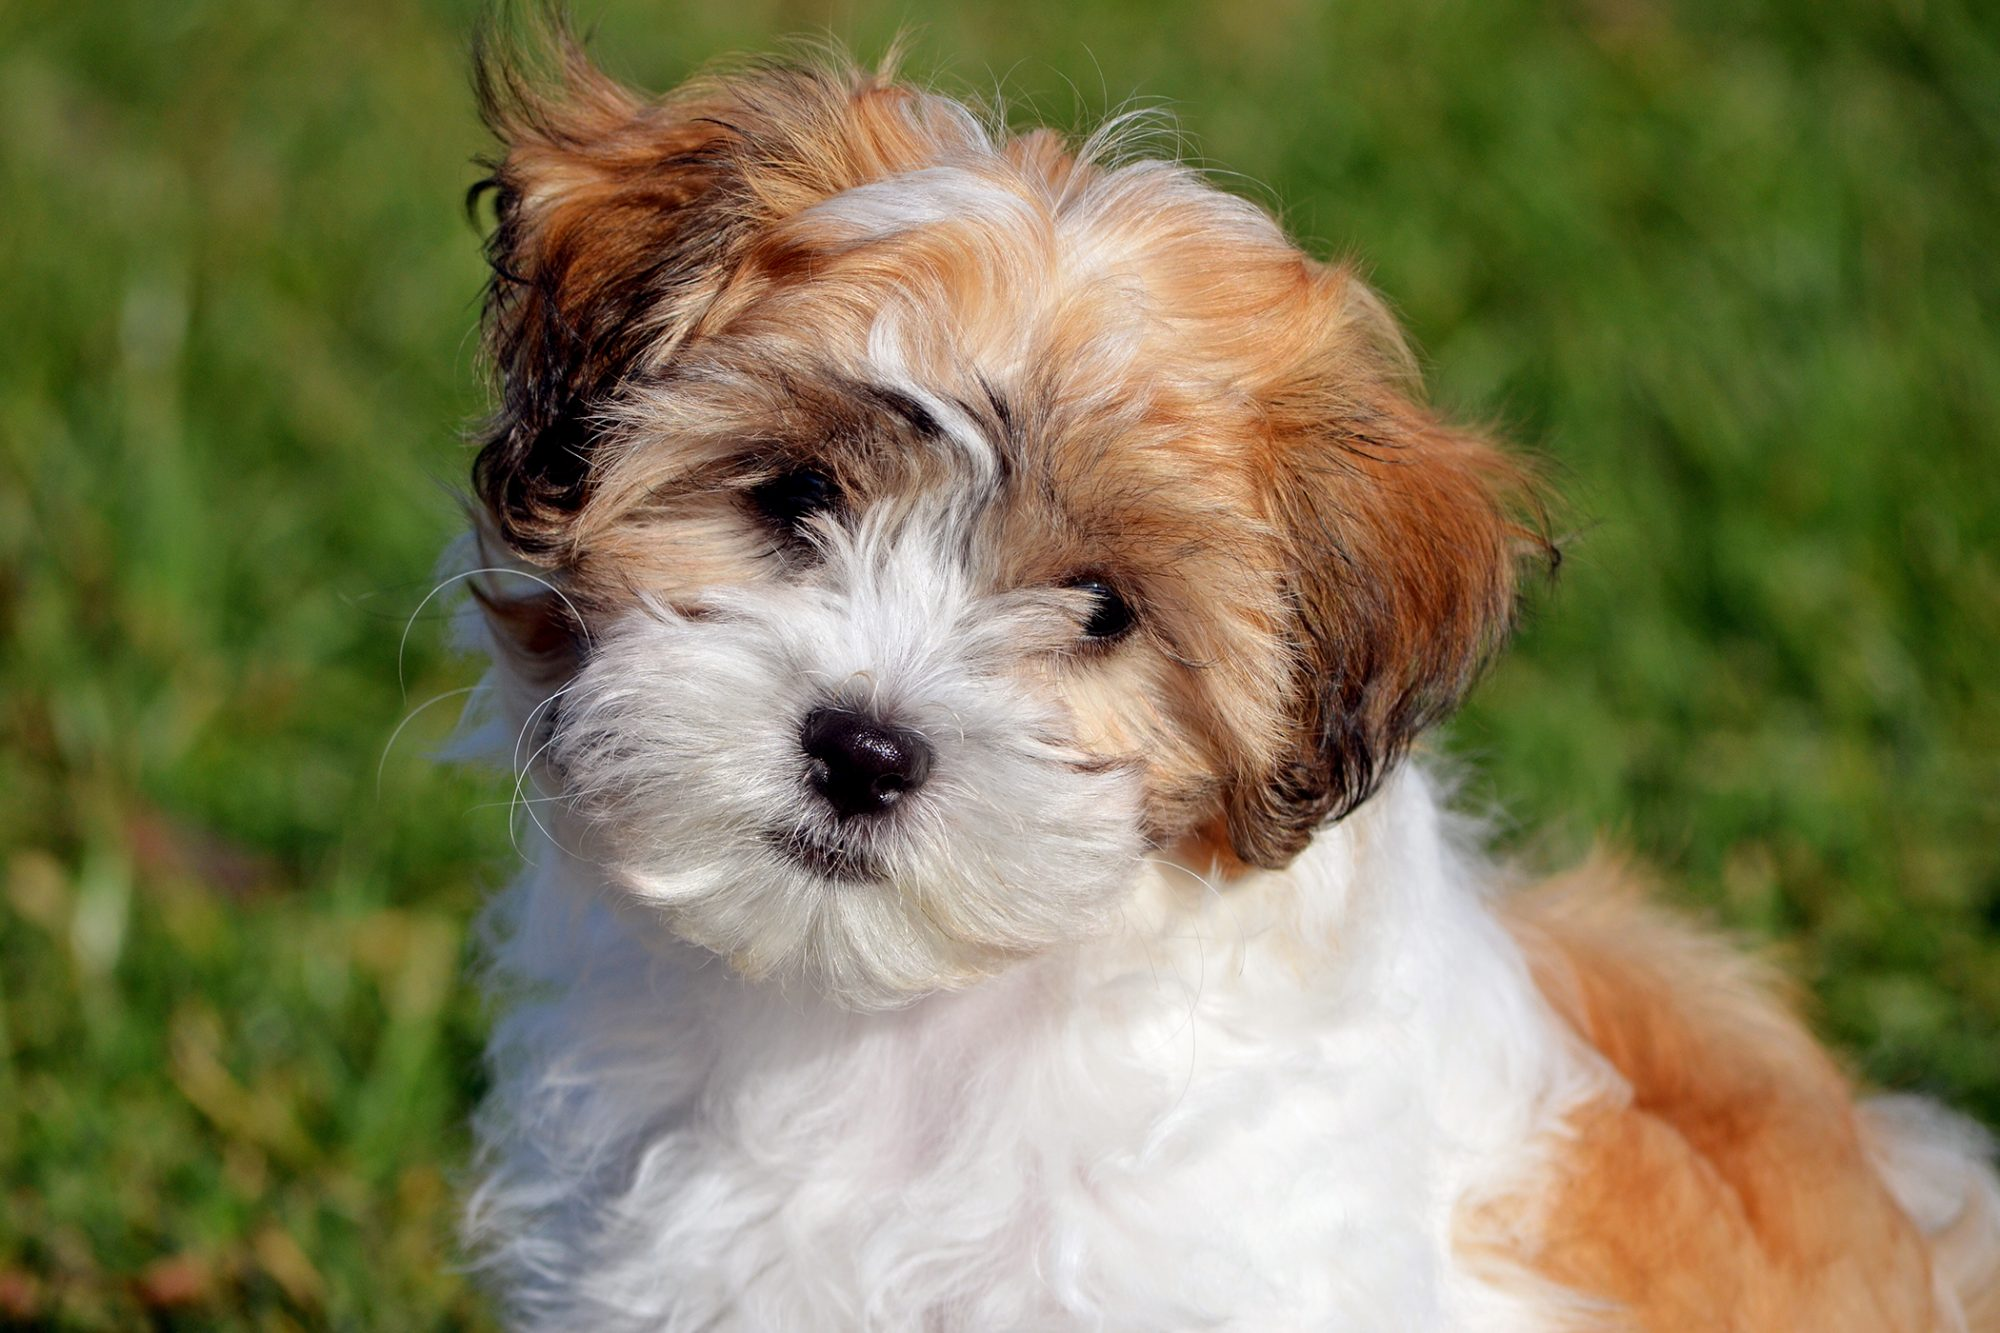 cute brown and white shichon puppy sitting outside looking directly at the camera